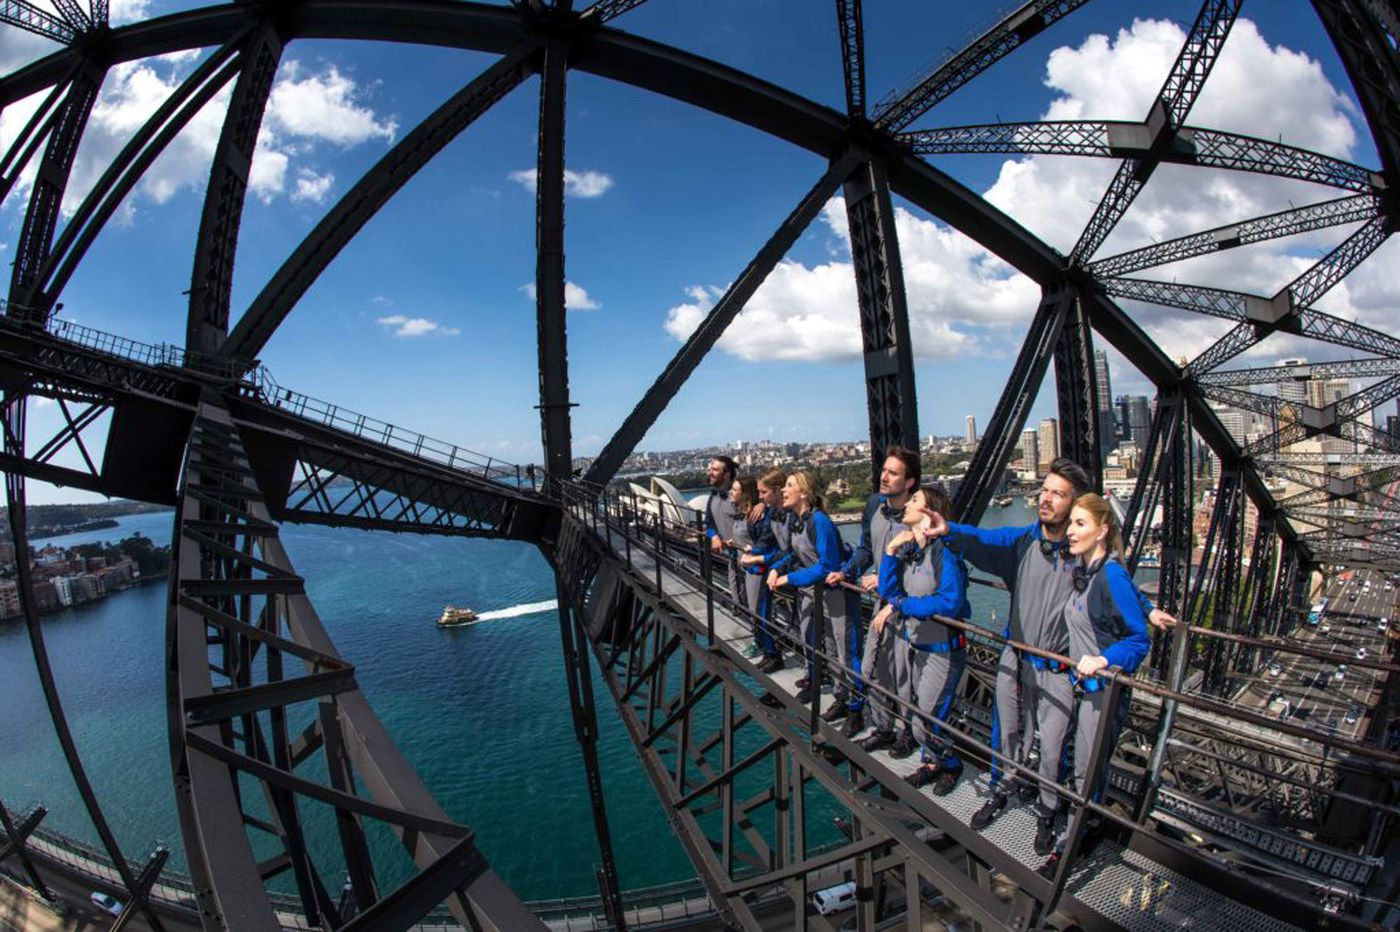 Atop Sydney's harbor bridge: Incredible views and maybe a cure for fear of heights